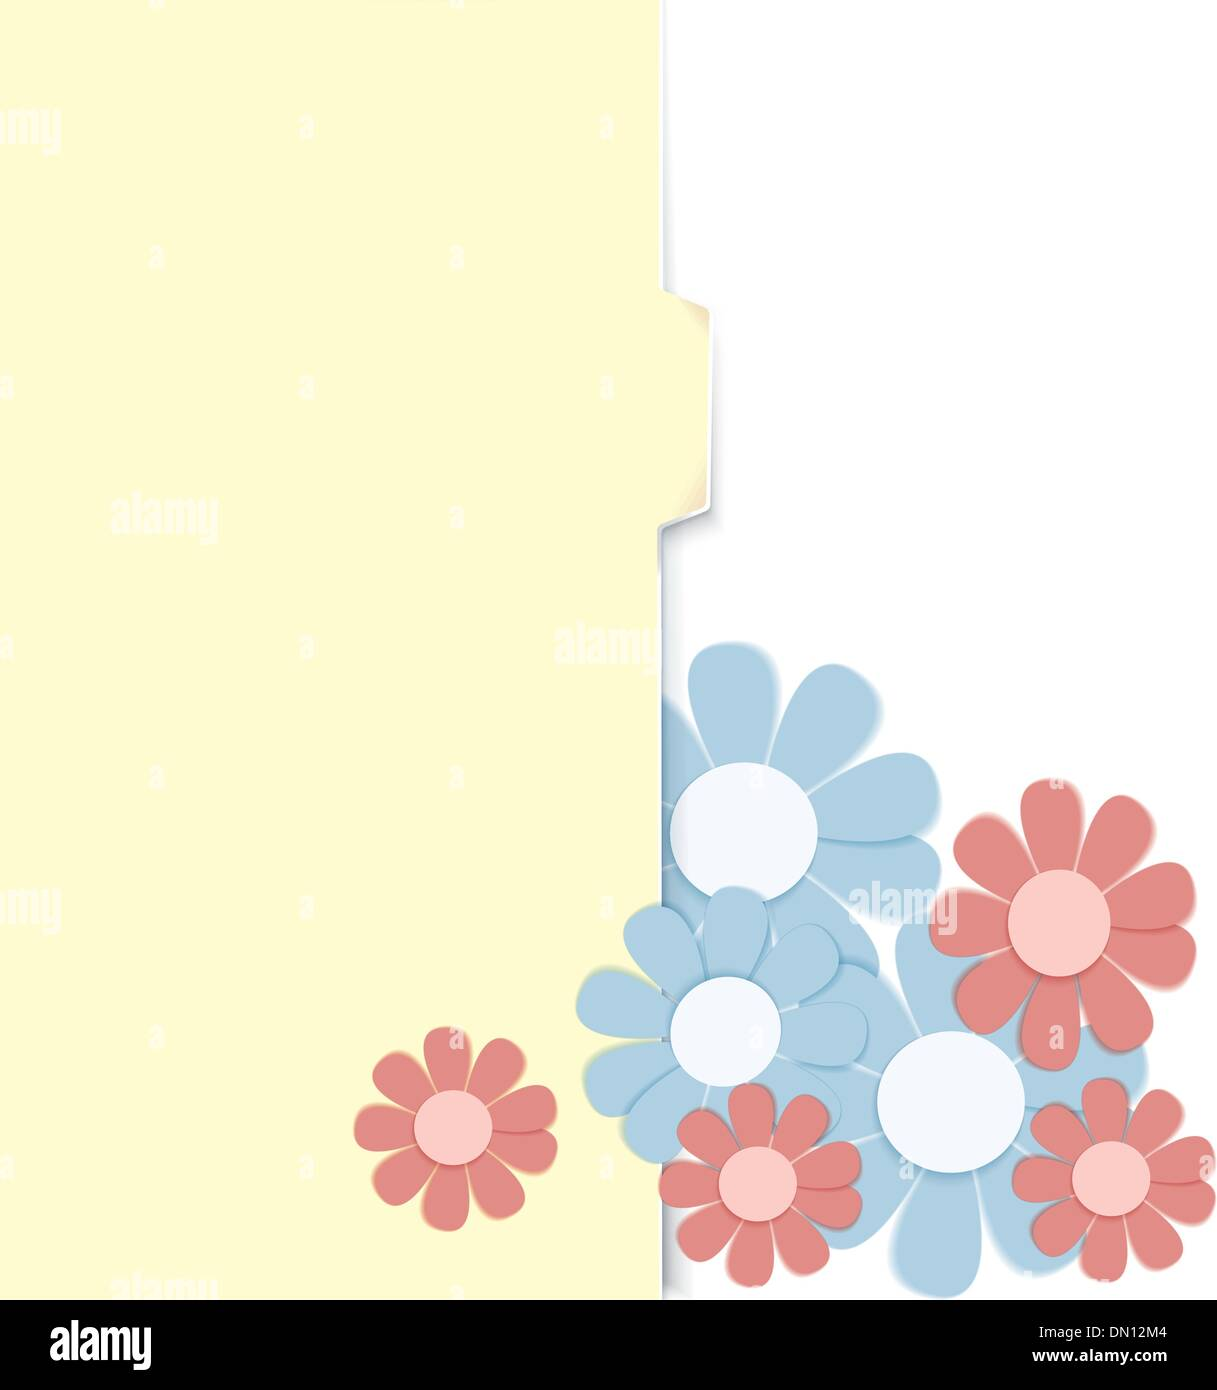 Folder with paper crafted flowers - Stock Image